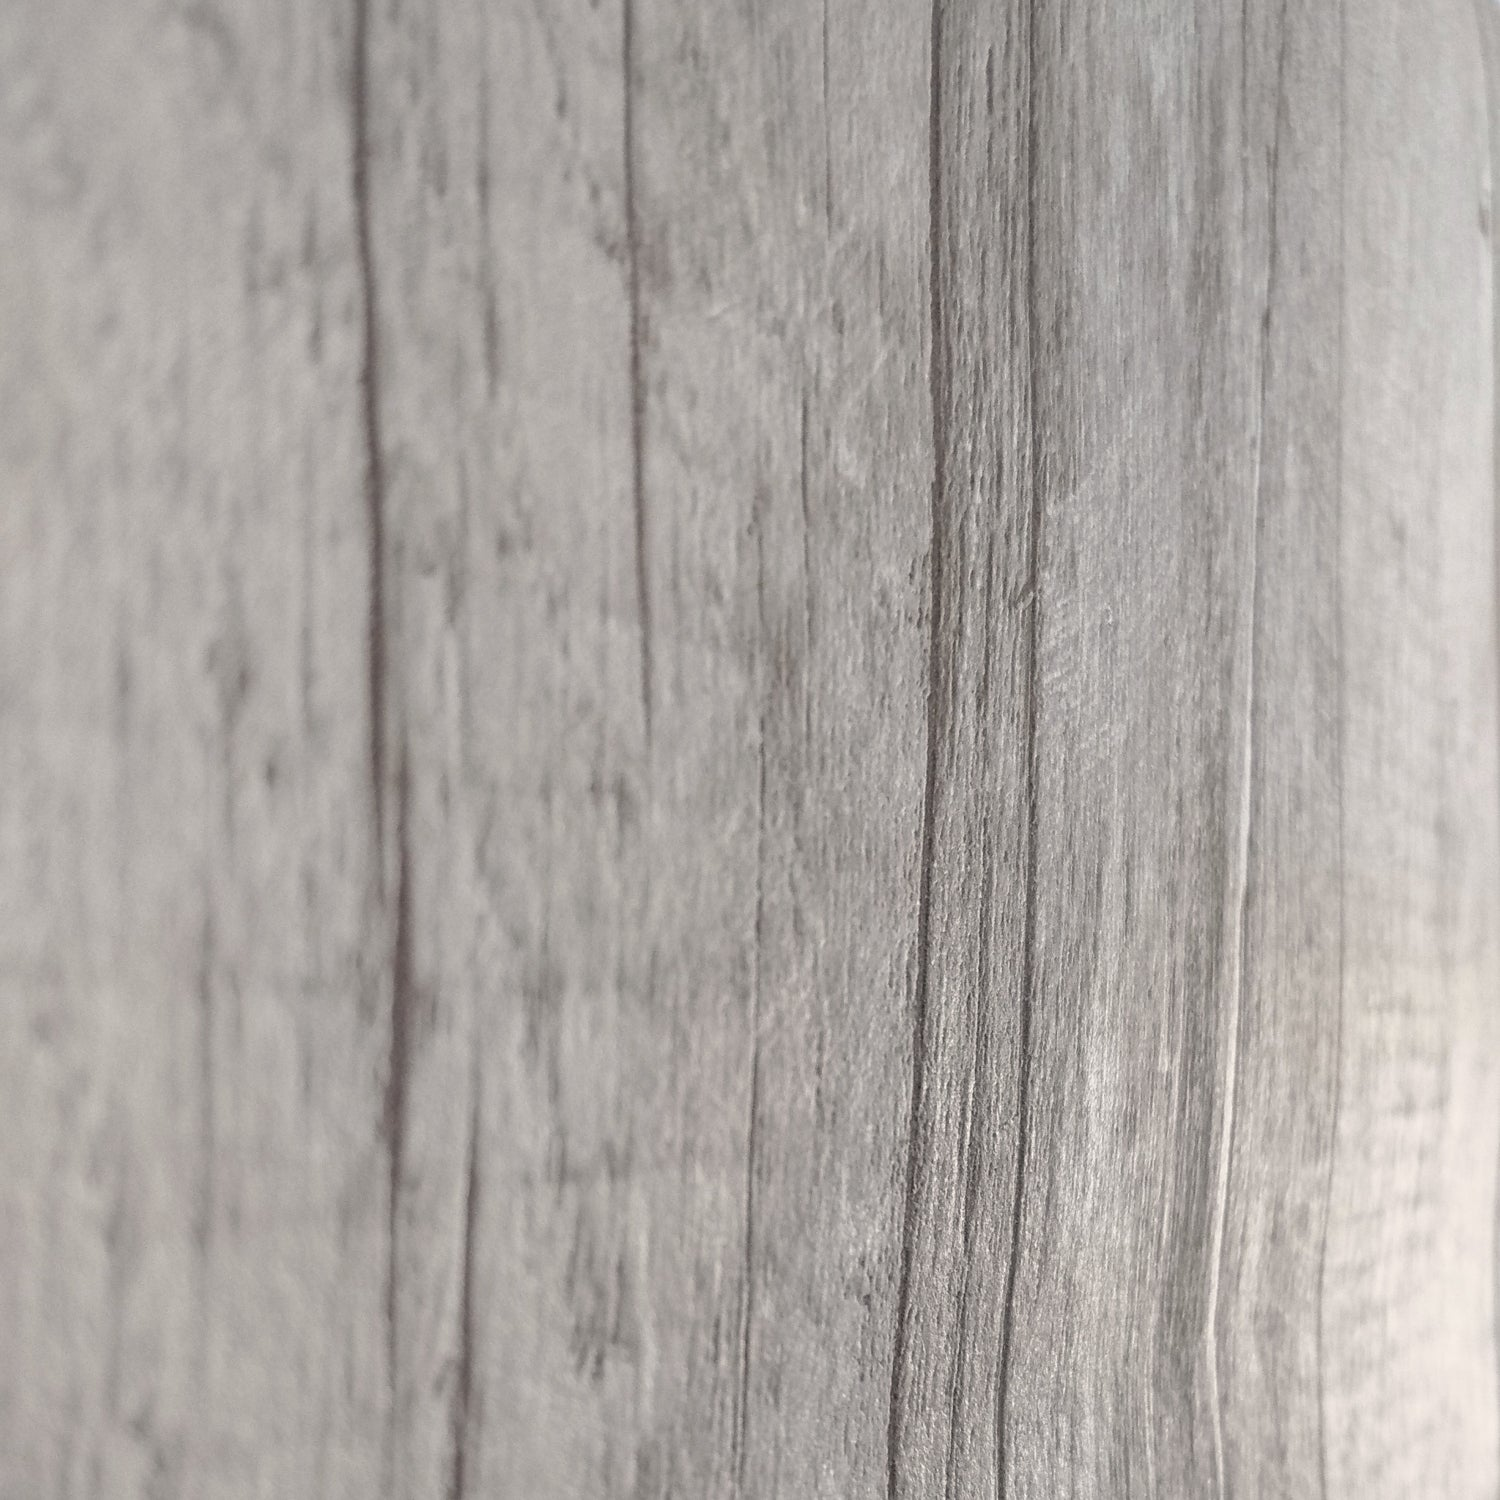 Timber Wood Effect Textured Wallpaper Grey Taupe Toned